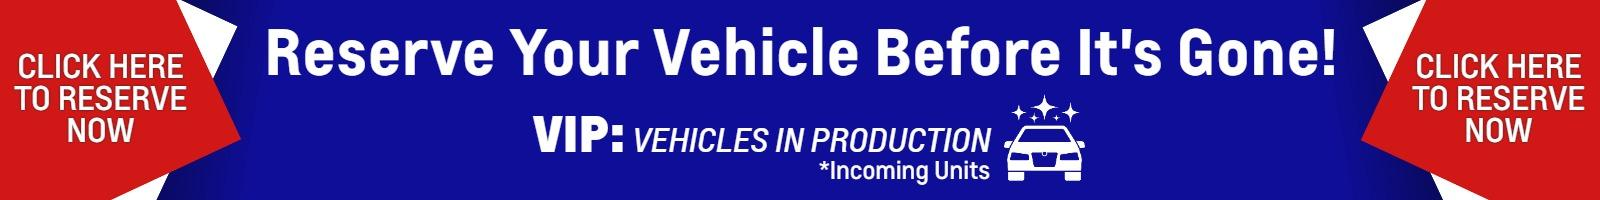 Reserve your vehicle before it's gone! VIP : VEHICLES IN PRODUCTION Click here to reserve now